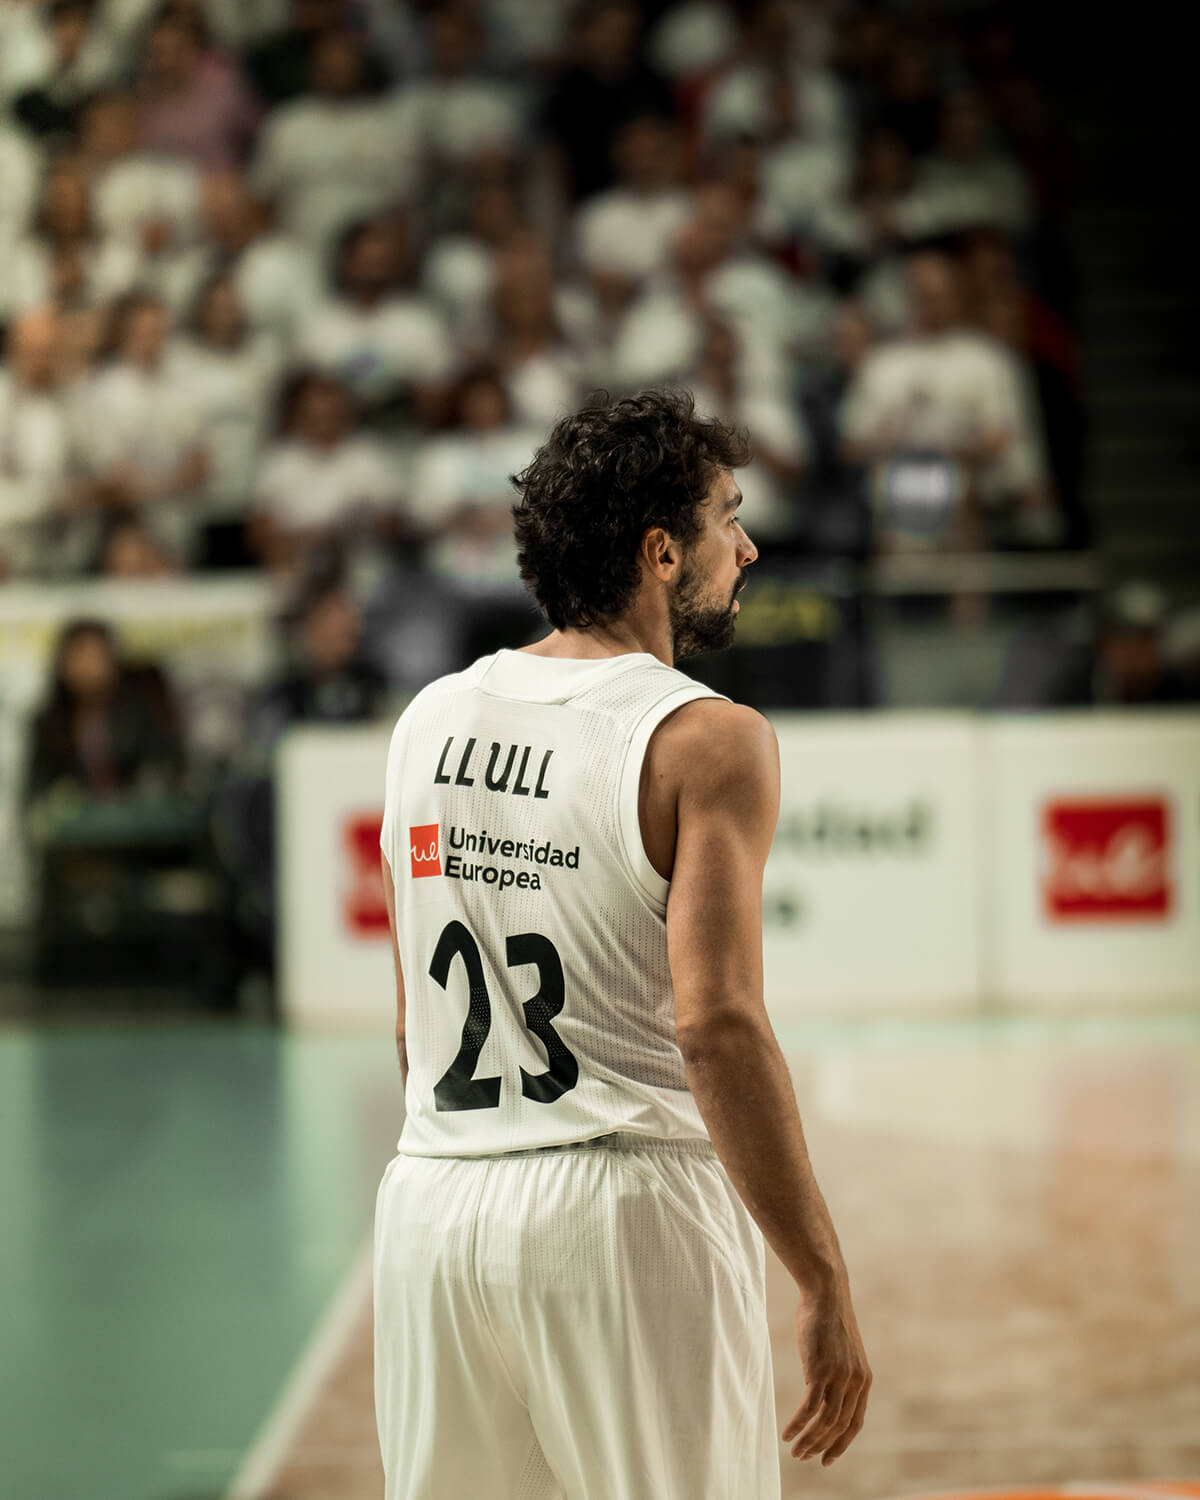 Real Madrid VS Baskonia - Llull